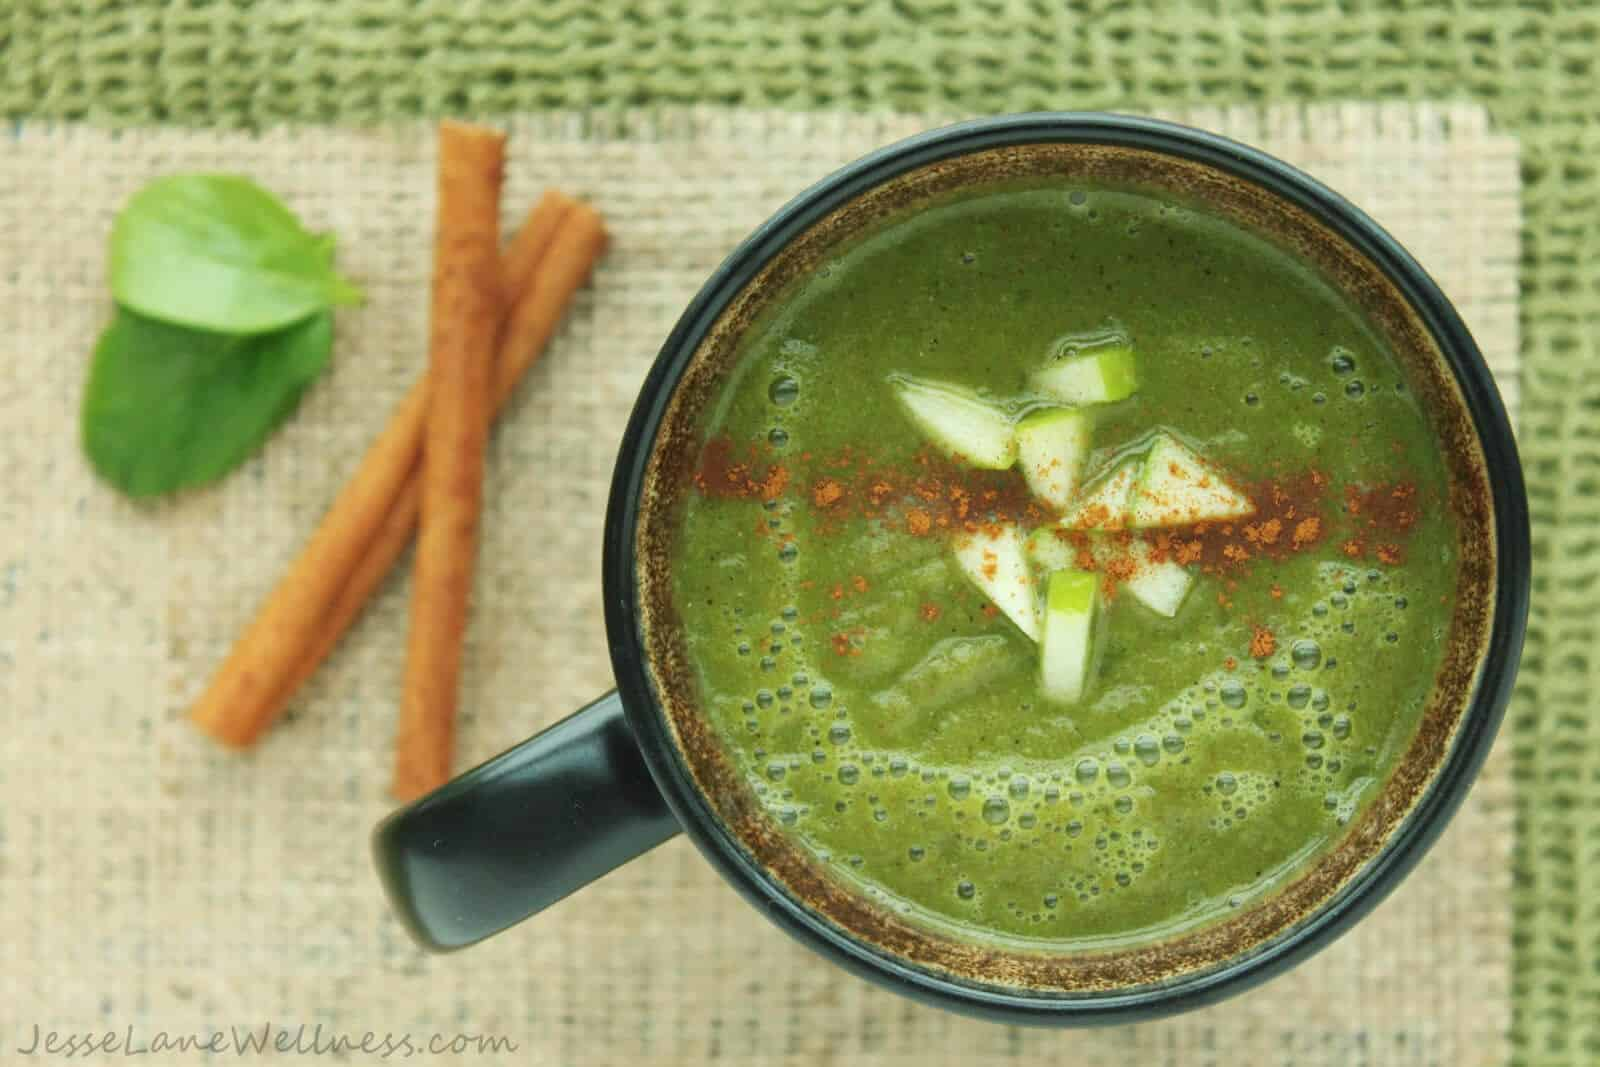 Hot-Apple-Cider-Smoothie-by-@JesseLWellness-smoothie